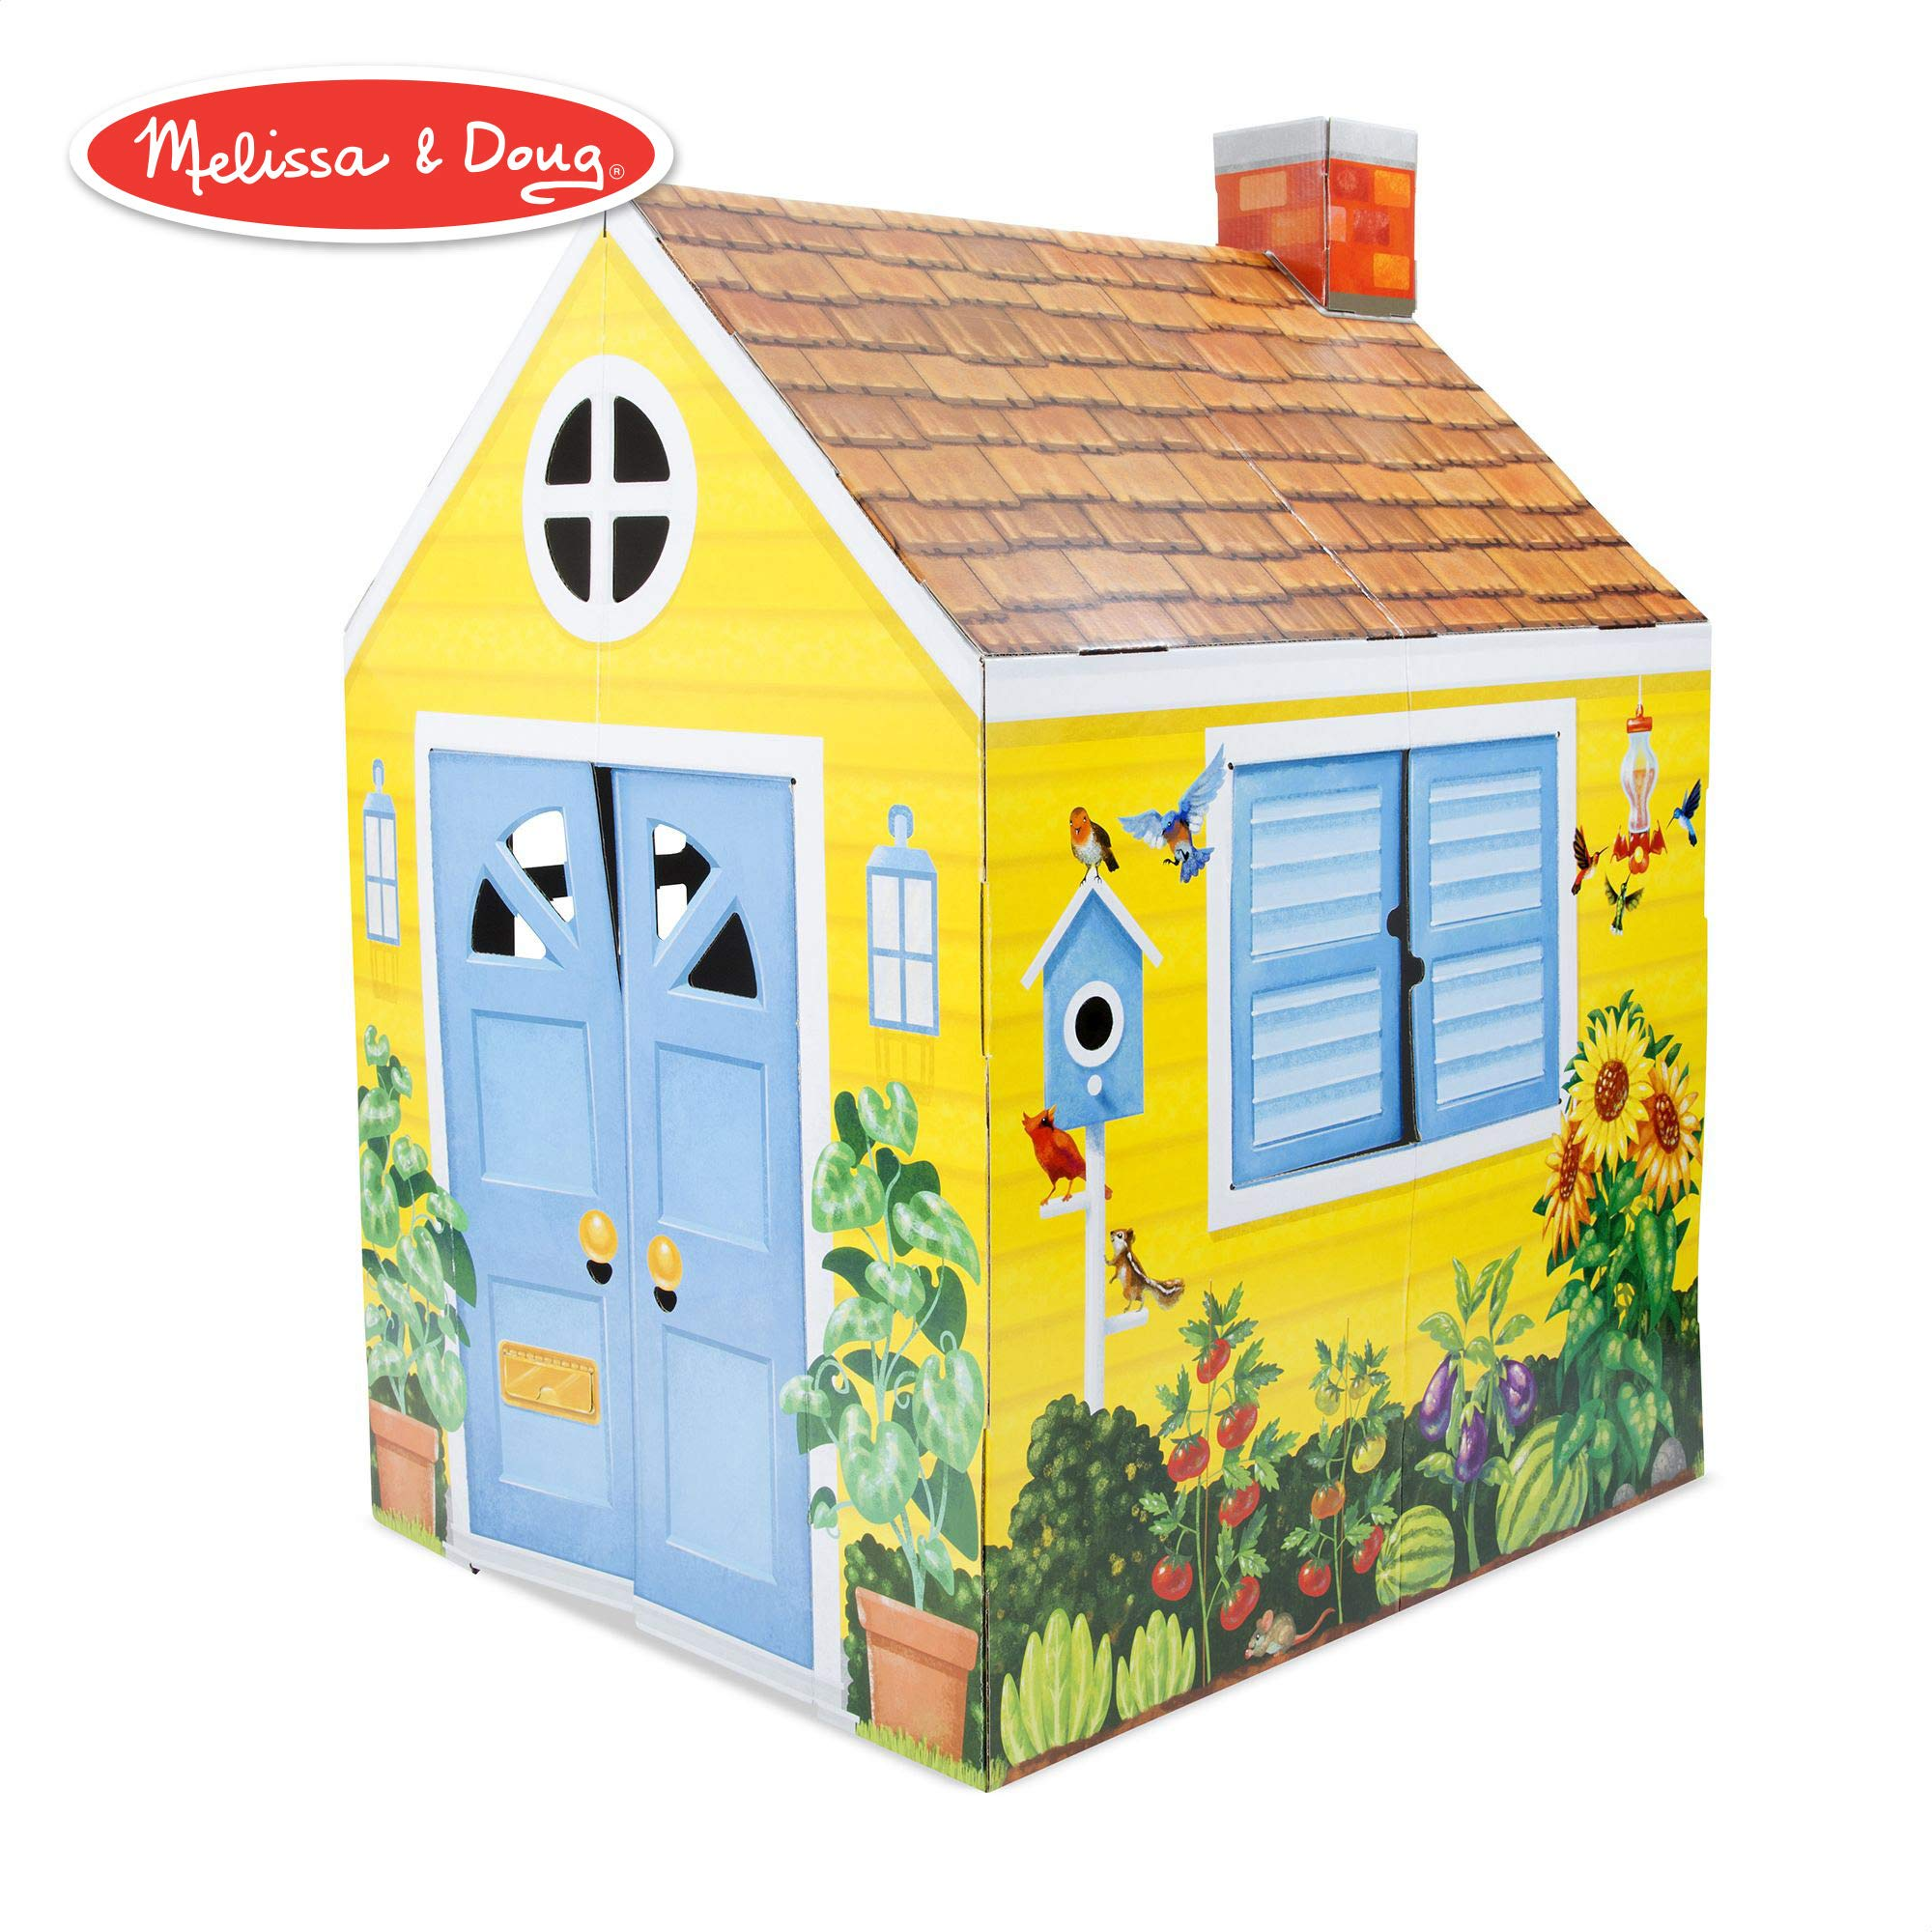 Melissa & Doug Country Cottage Indoor Playhouse (Role-Play Center, Sturdy Construction, Vibrant Exterior Artwork, 54'' H x 39'' W x 33.4'' L) by Melissa & Doug